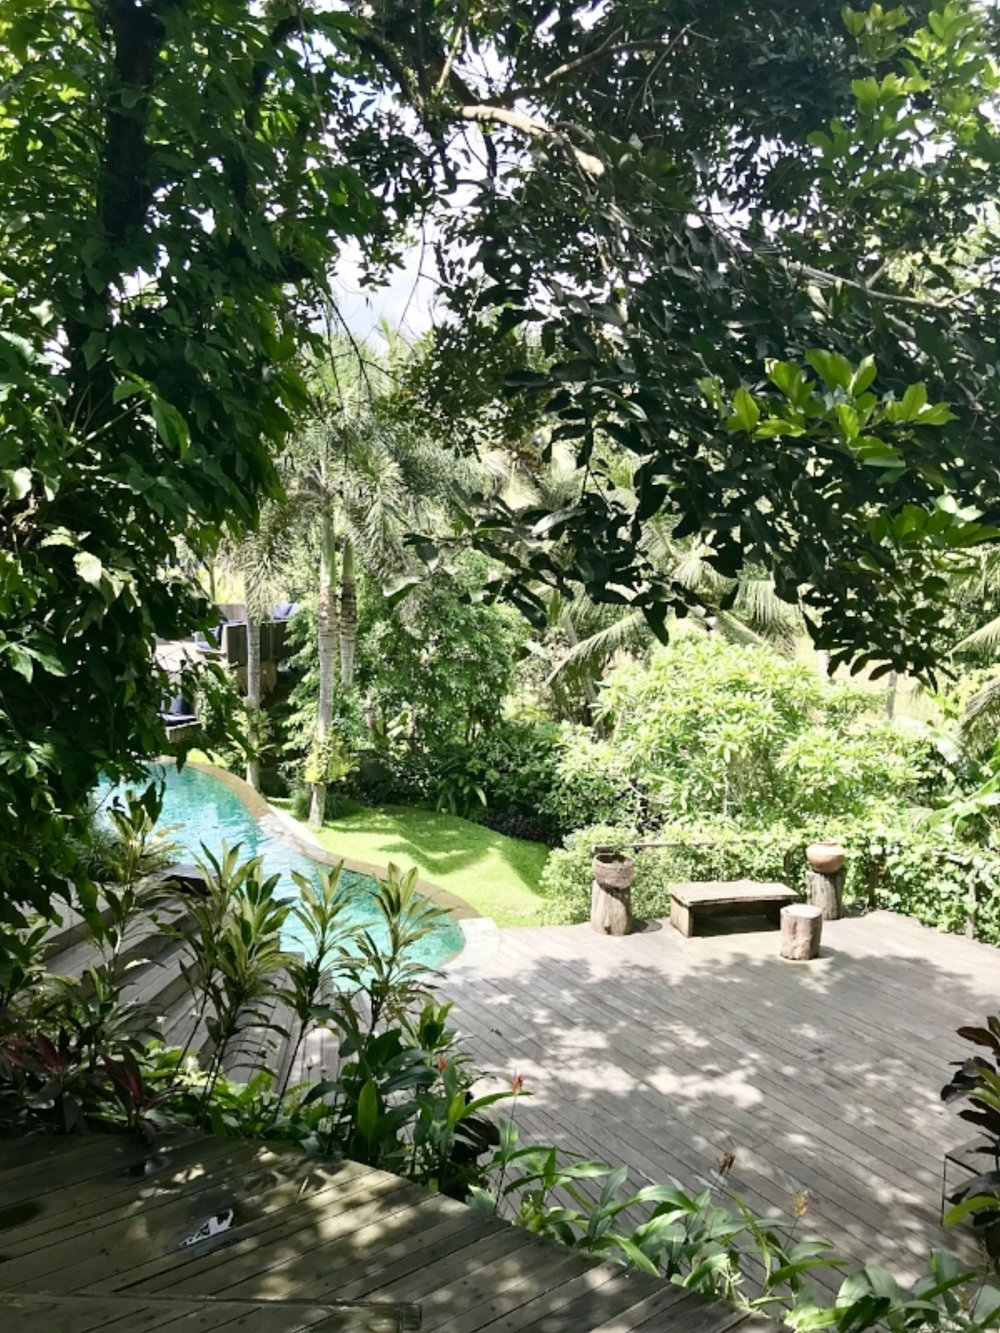 Soulshine is an absolute sanctuary in Ubud